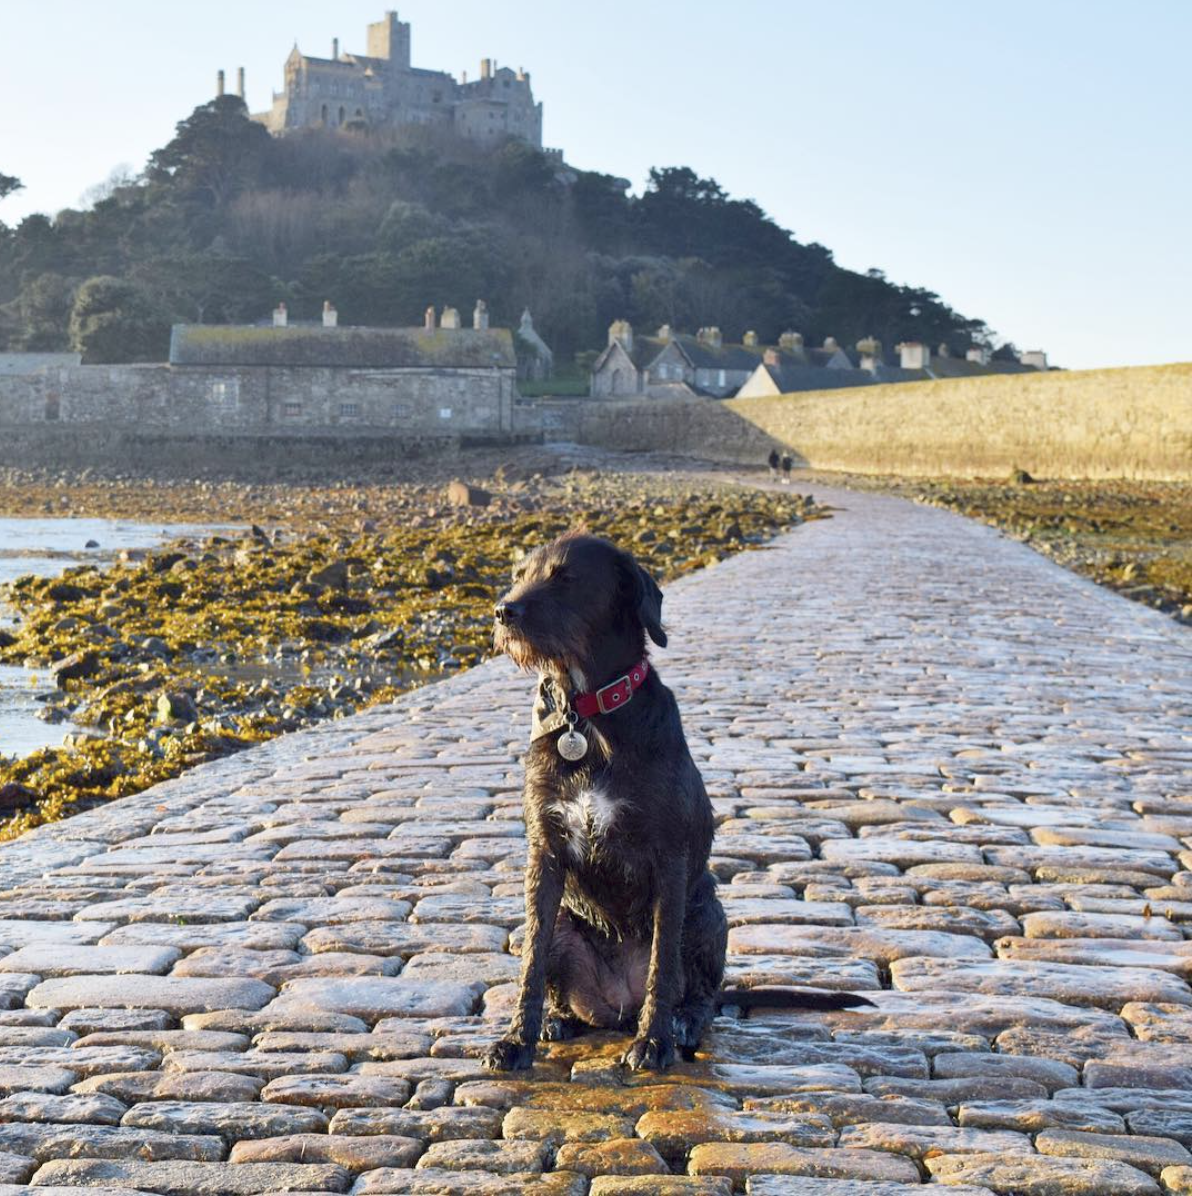 You are allowed to walk across the Causeway to St Michaels Mount at low tide with your dog. -